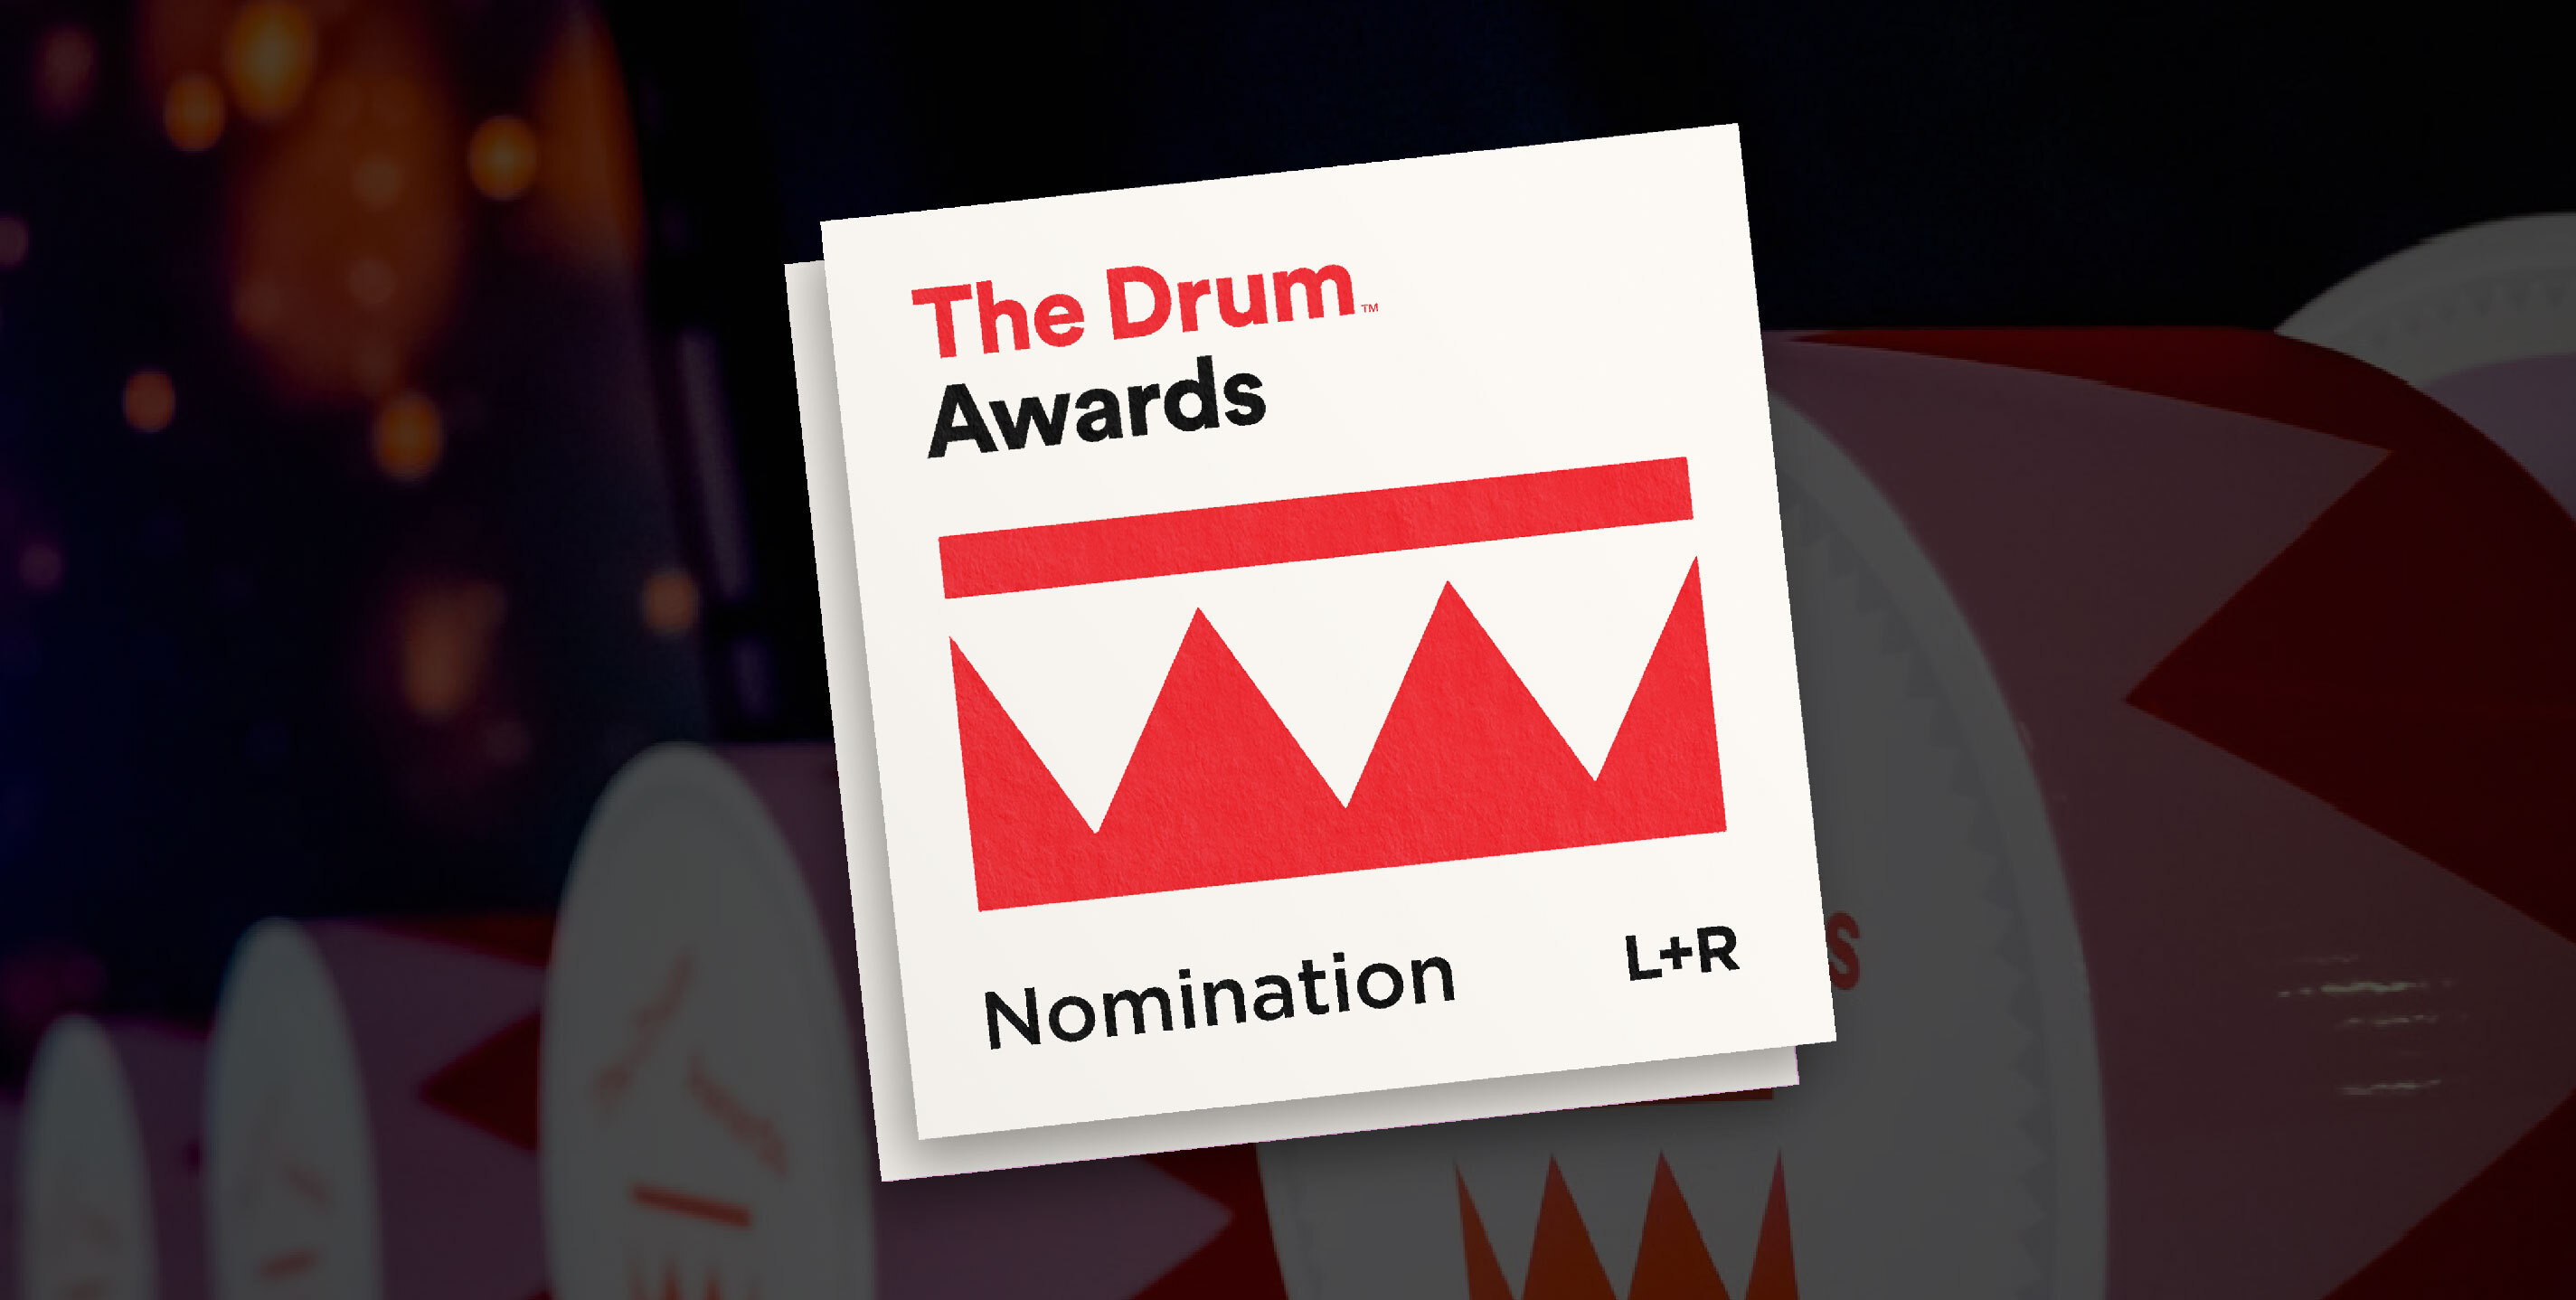 L+R Nominated for The Drum Awards for Digital Industries